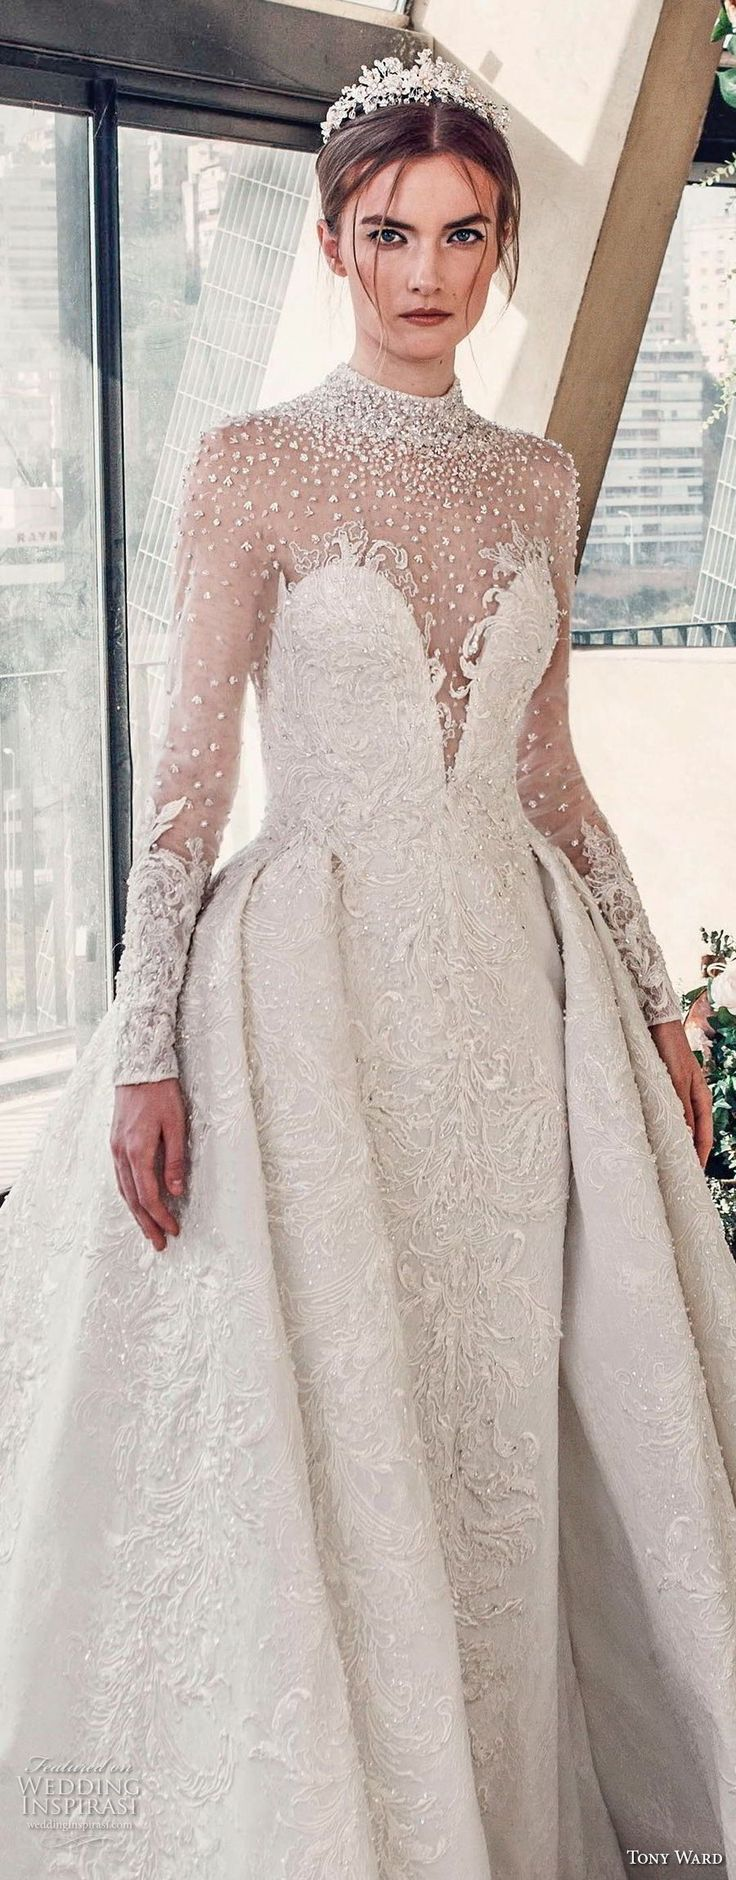 3114 best Brautkleider images on Pinterest | Gown wedding, Groom ...